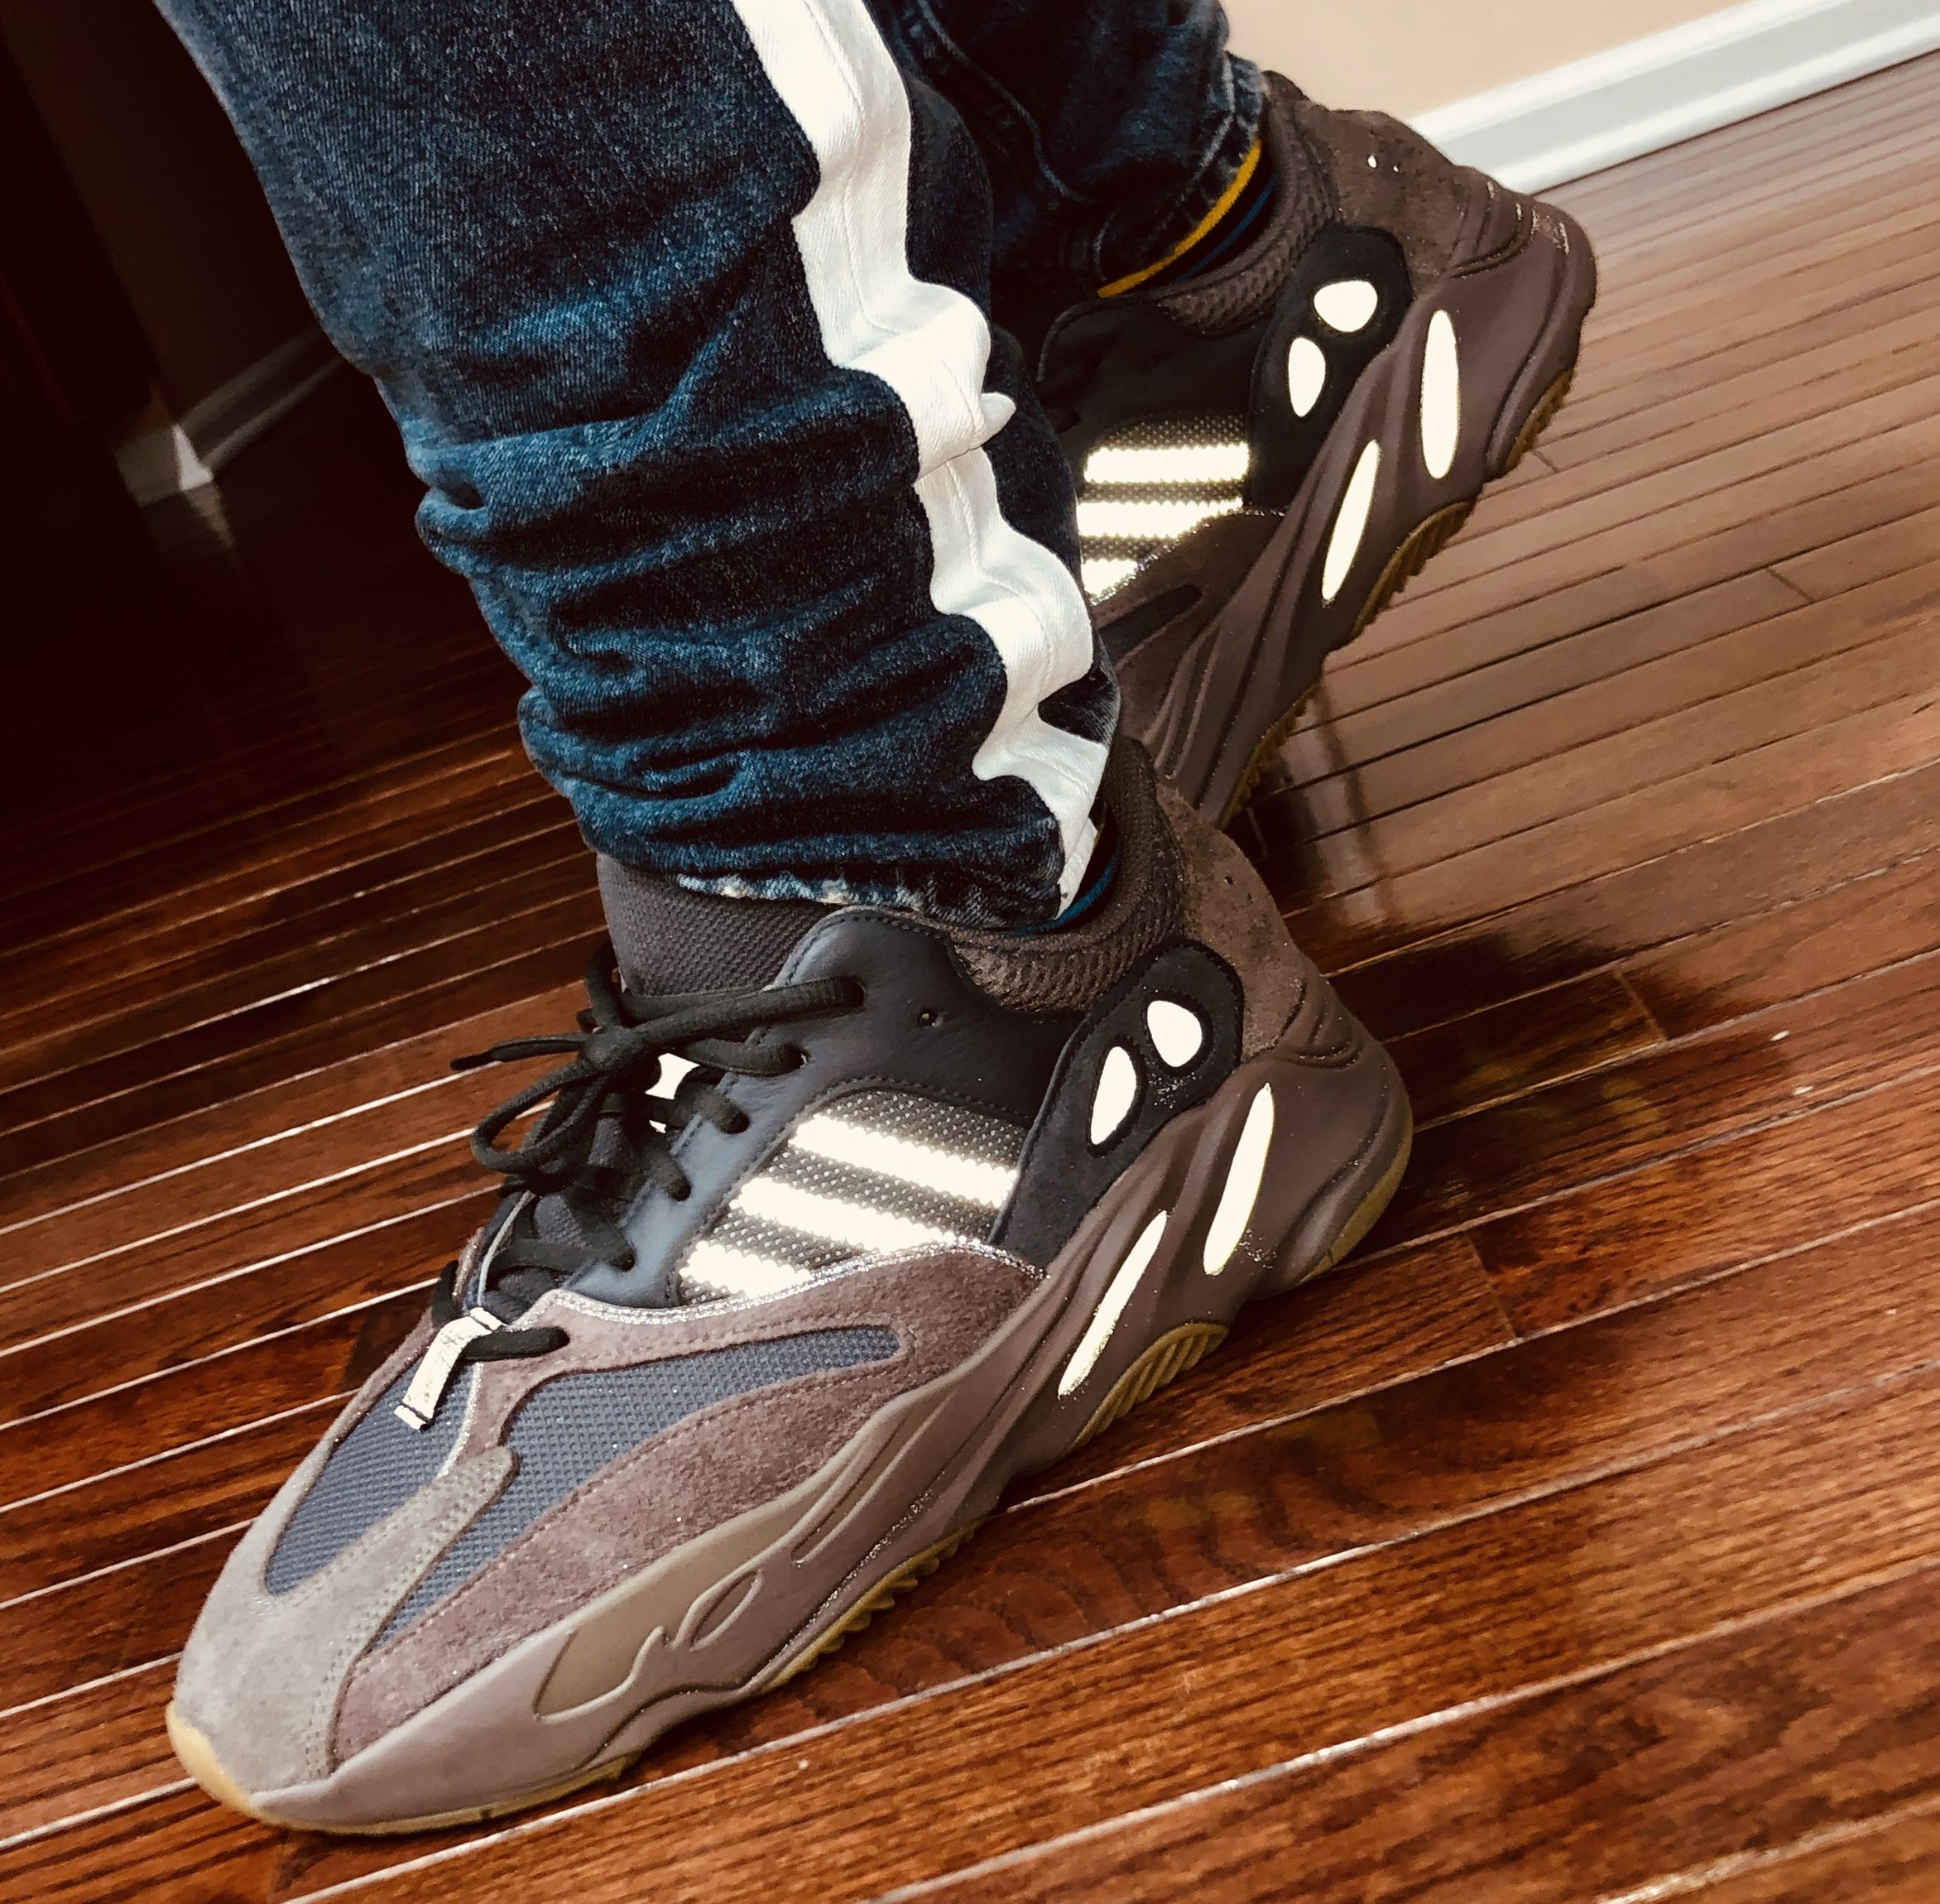 7867621ea Yeezy Boost 700 Mauve. Reflective effect shown due to camera flash ...